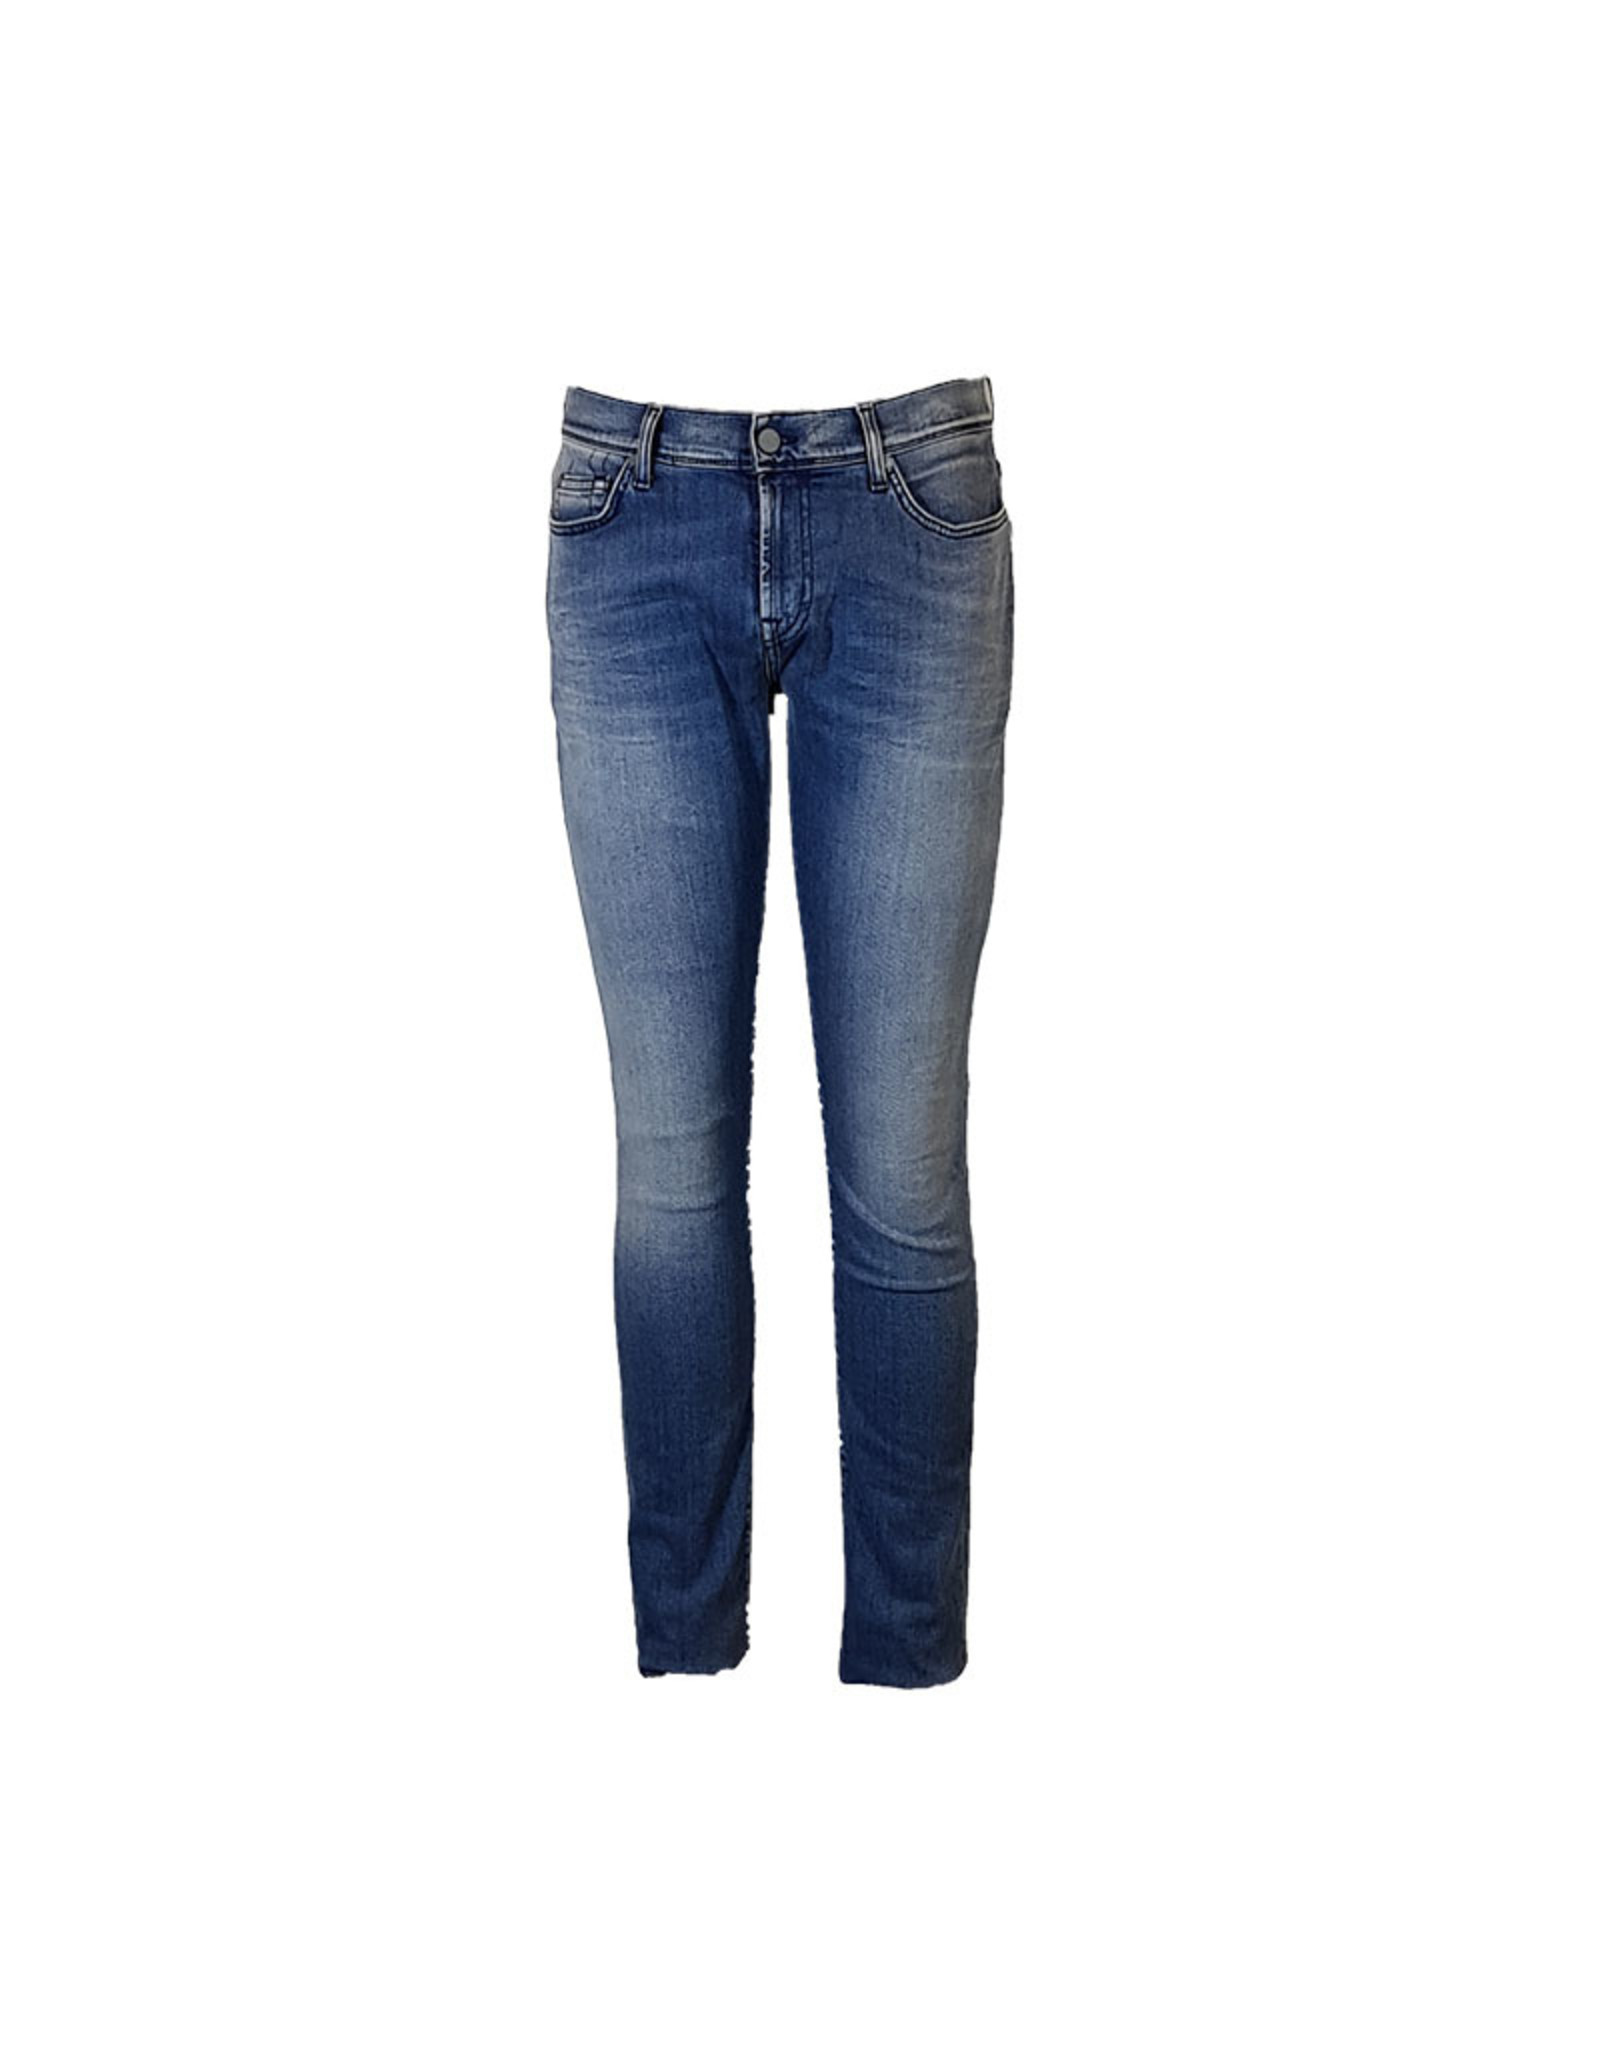 7 For All Mankind 7FAM jeans blauw Ronnie XL SM4R460AI